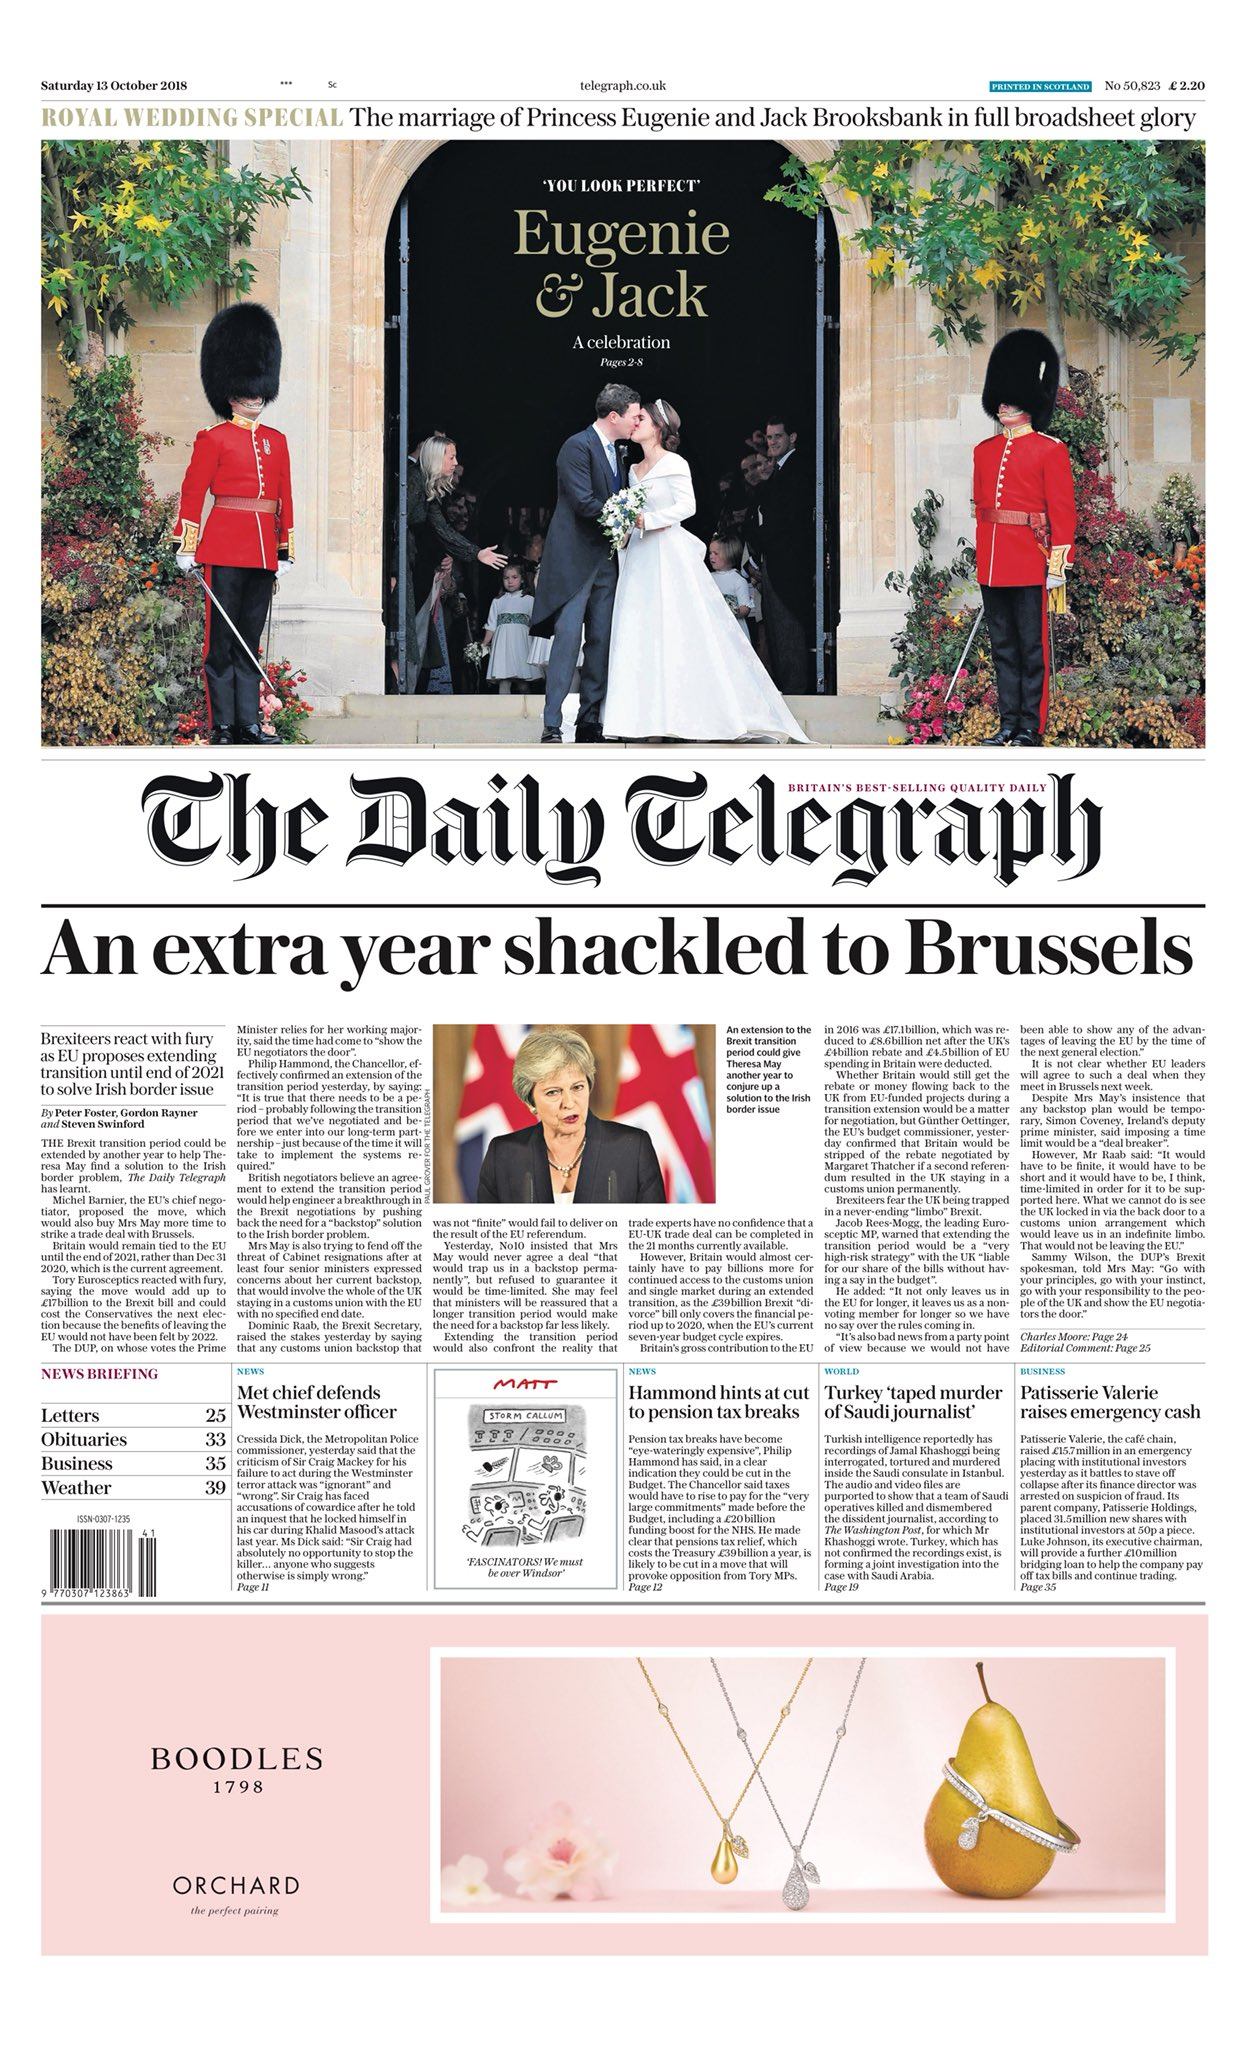 Saturday's TELEGRAPH: An extra year shackled to Brussels #tomorrowspaperstoday https://t.co/8Fwviu7idk